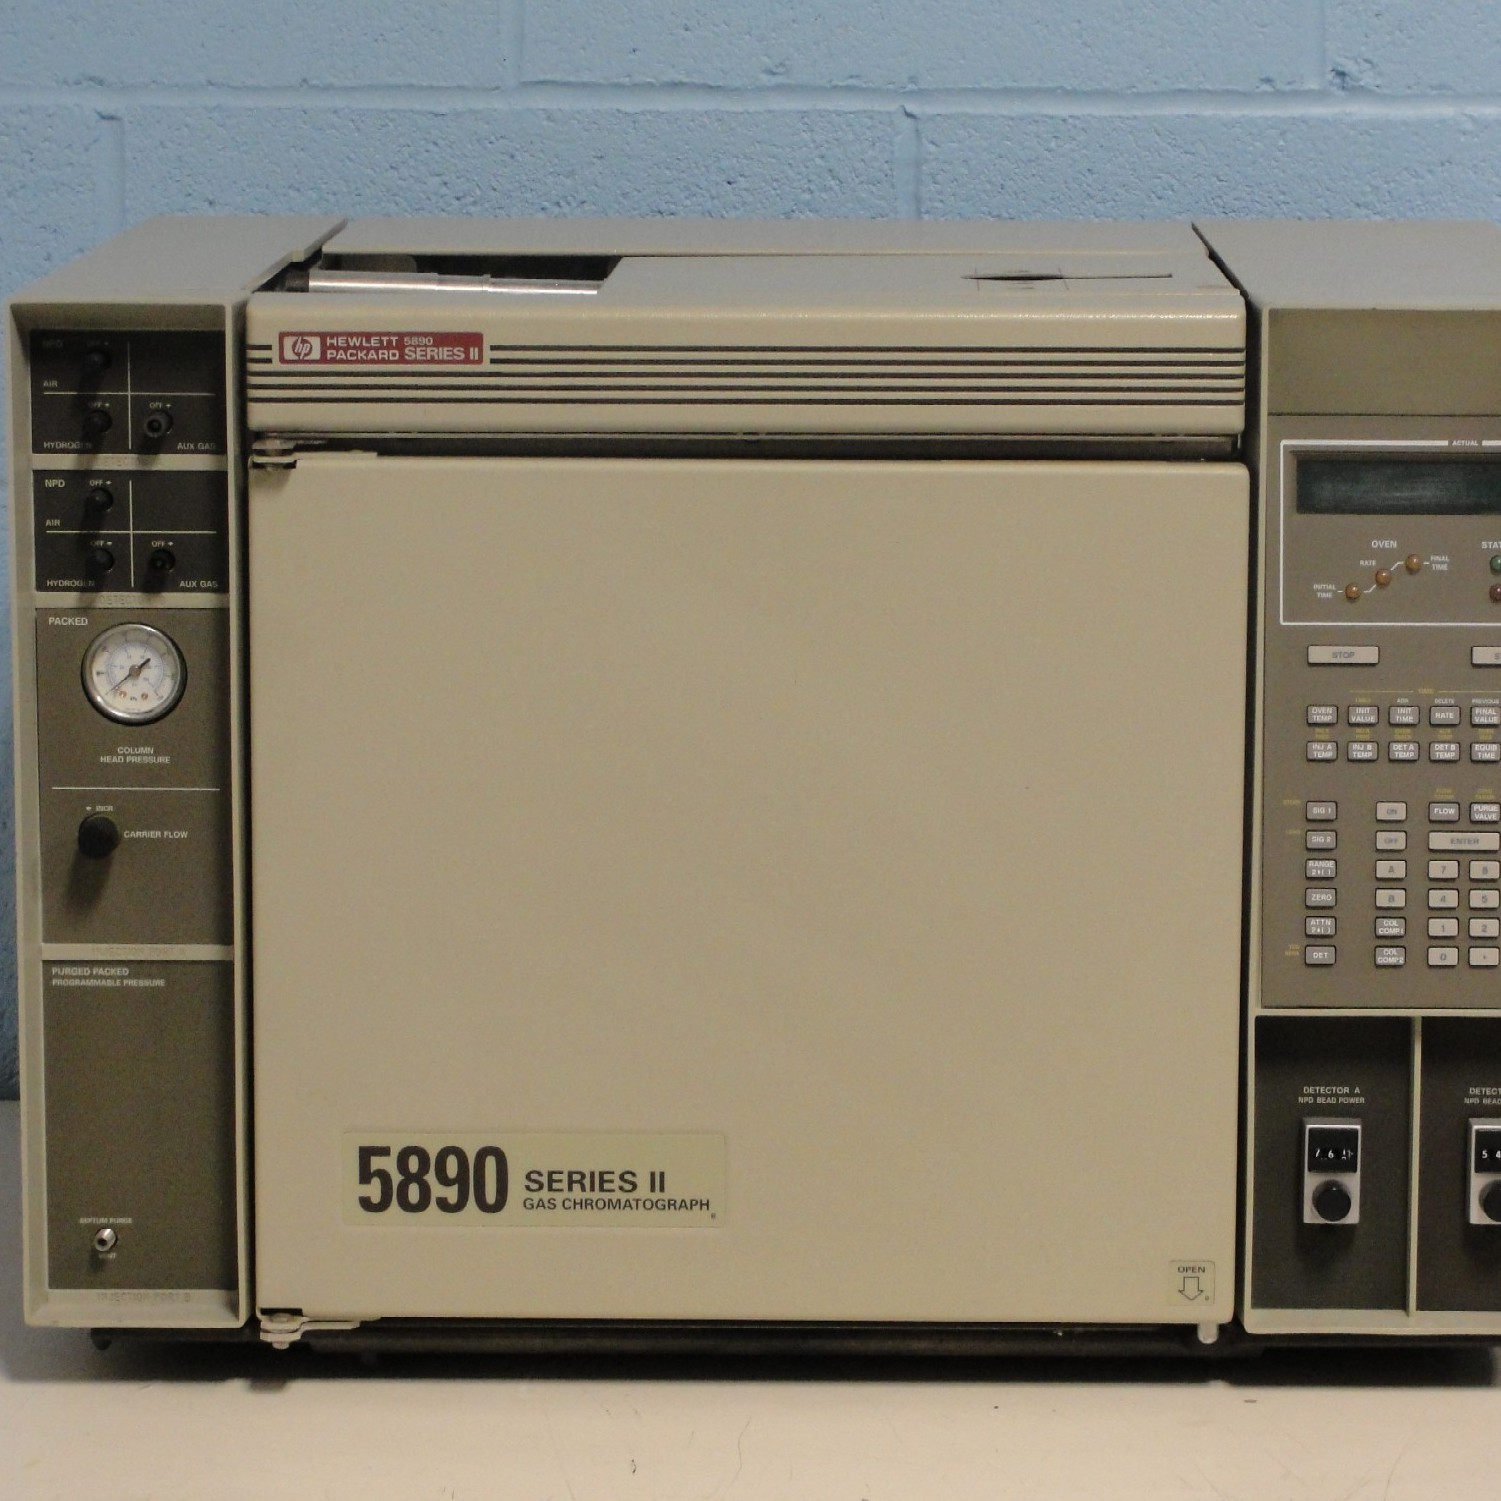 Hewlett Packard 5890 Series II Gas Chromatograph (GC) System Split/Splitless Programmable Pressure Injector Image